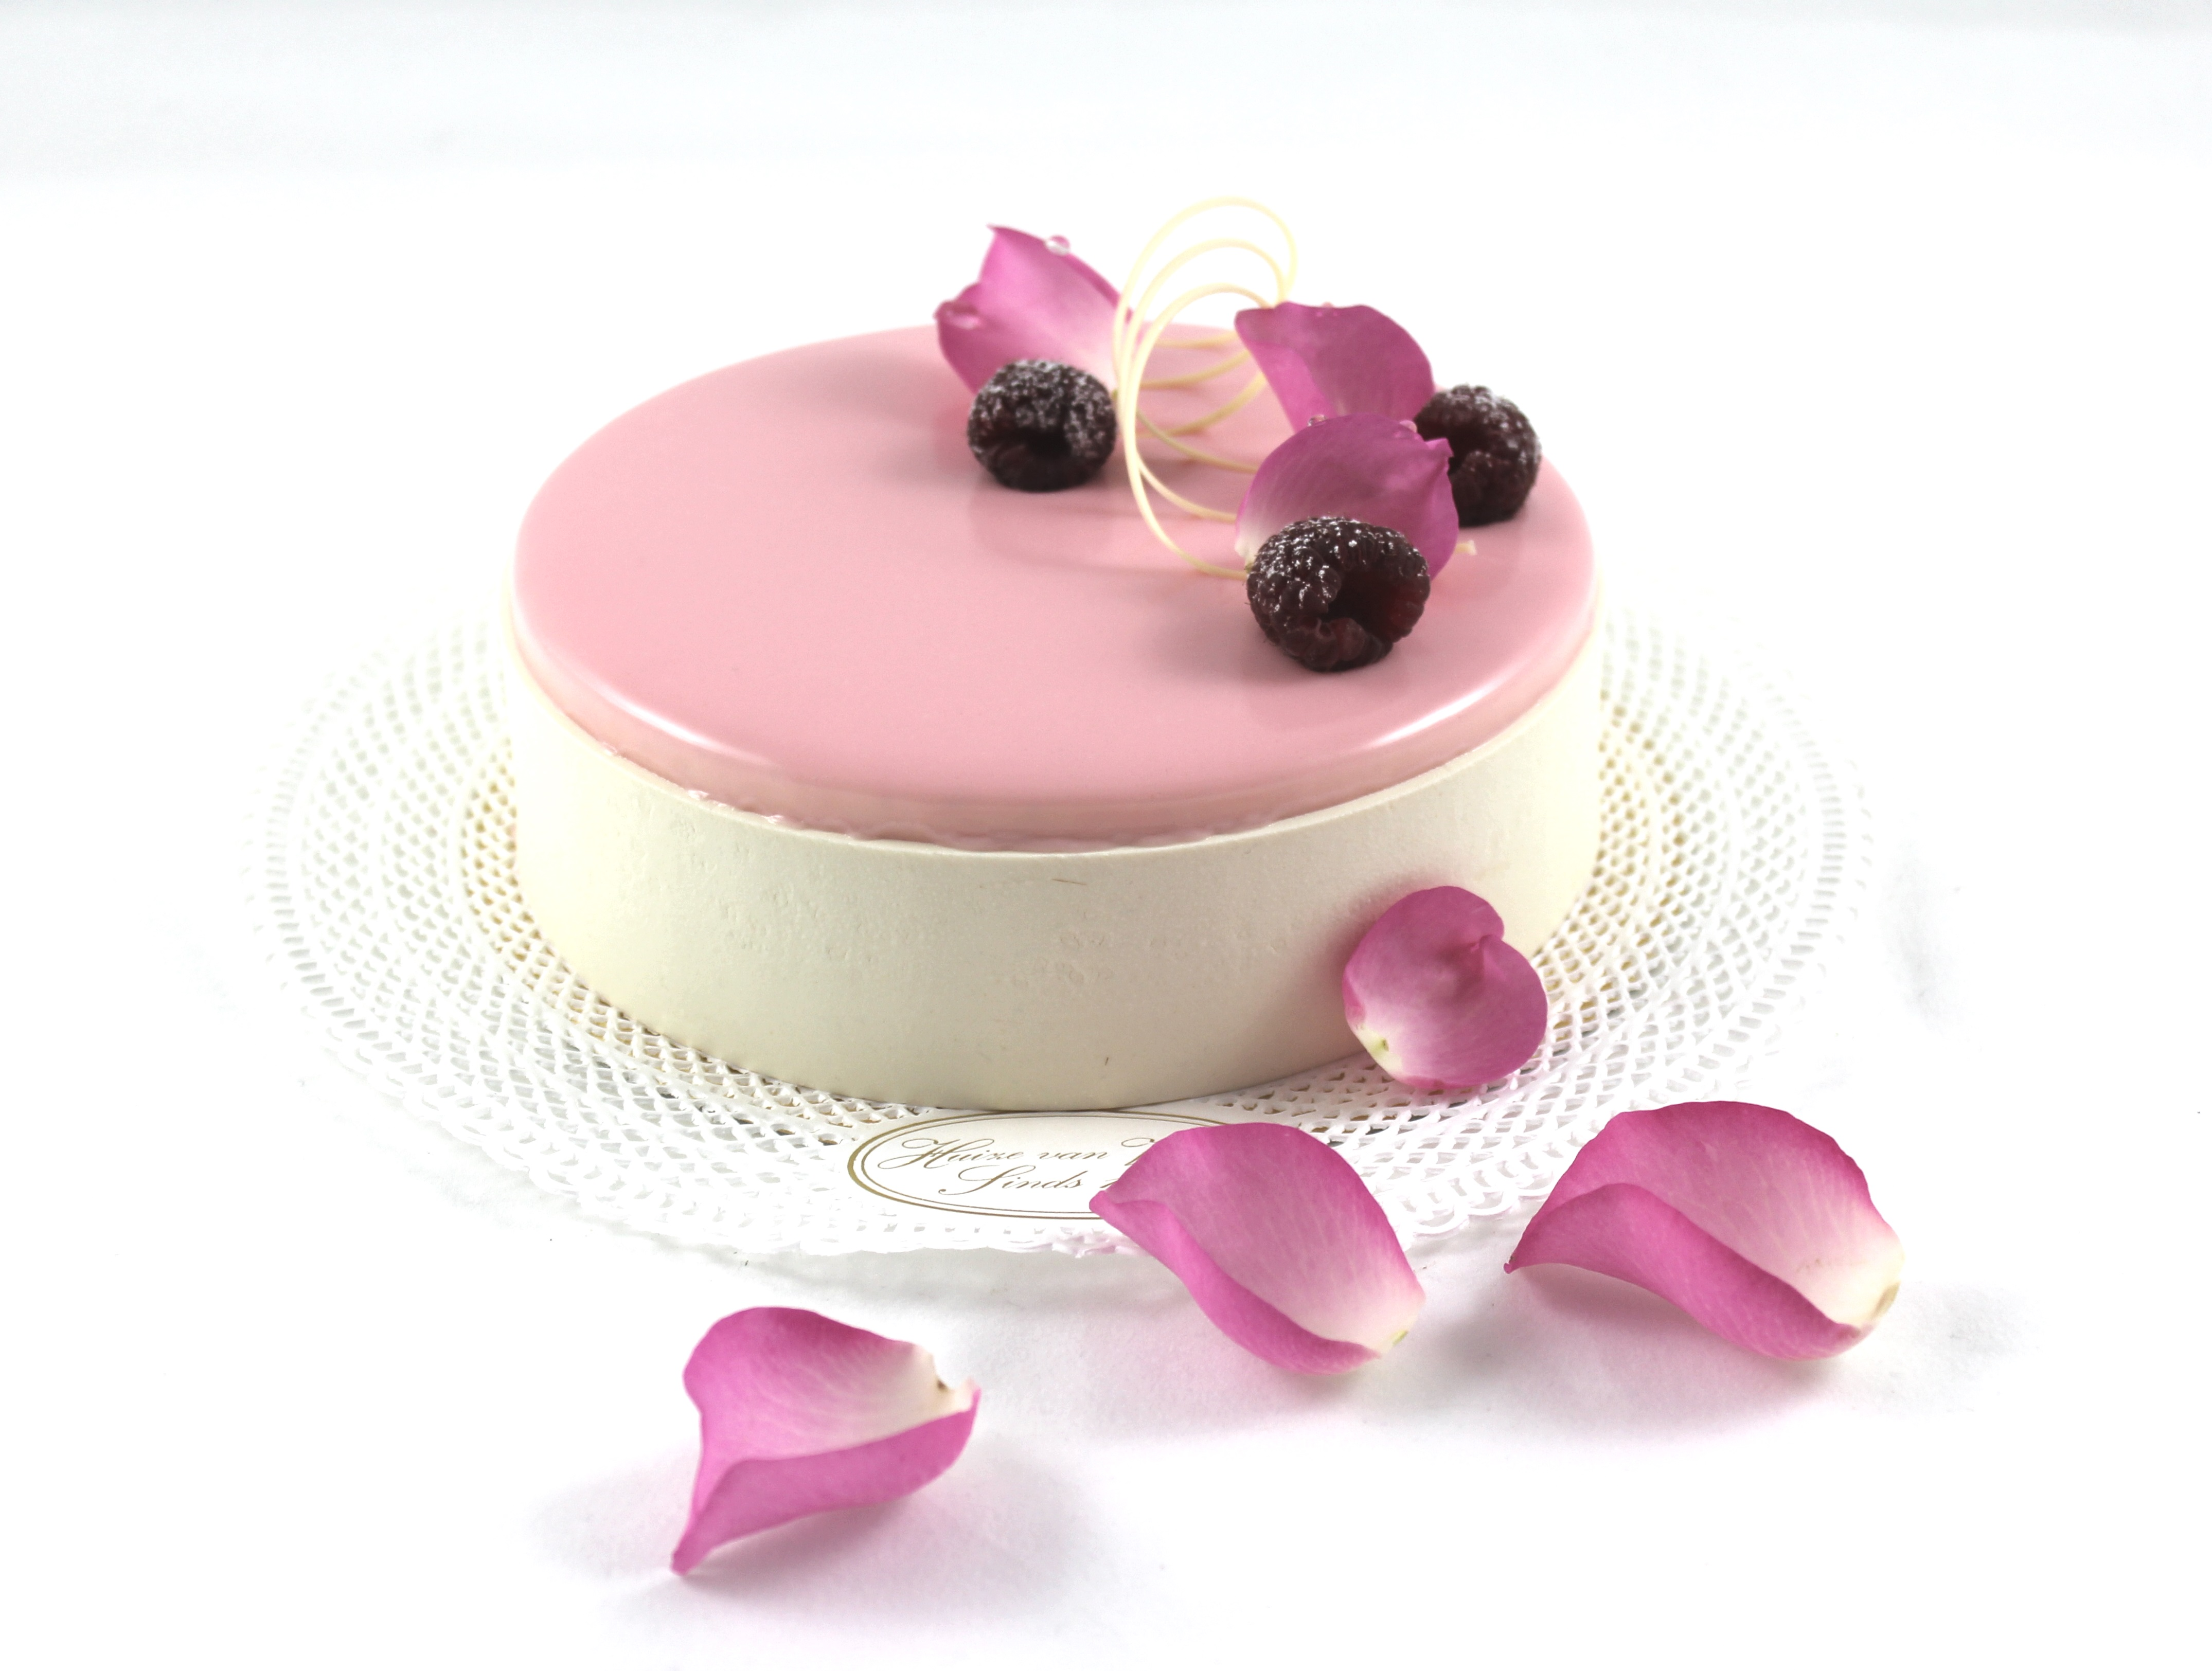 rose vanilla entremet with rose petals and raspberries